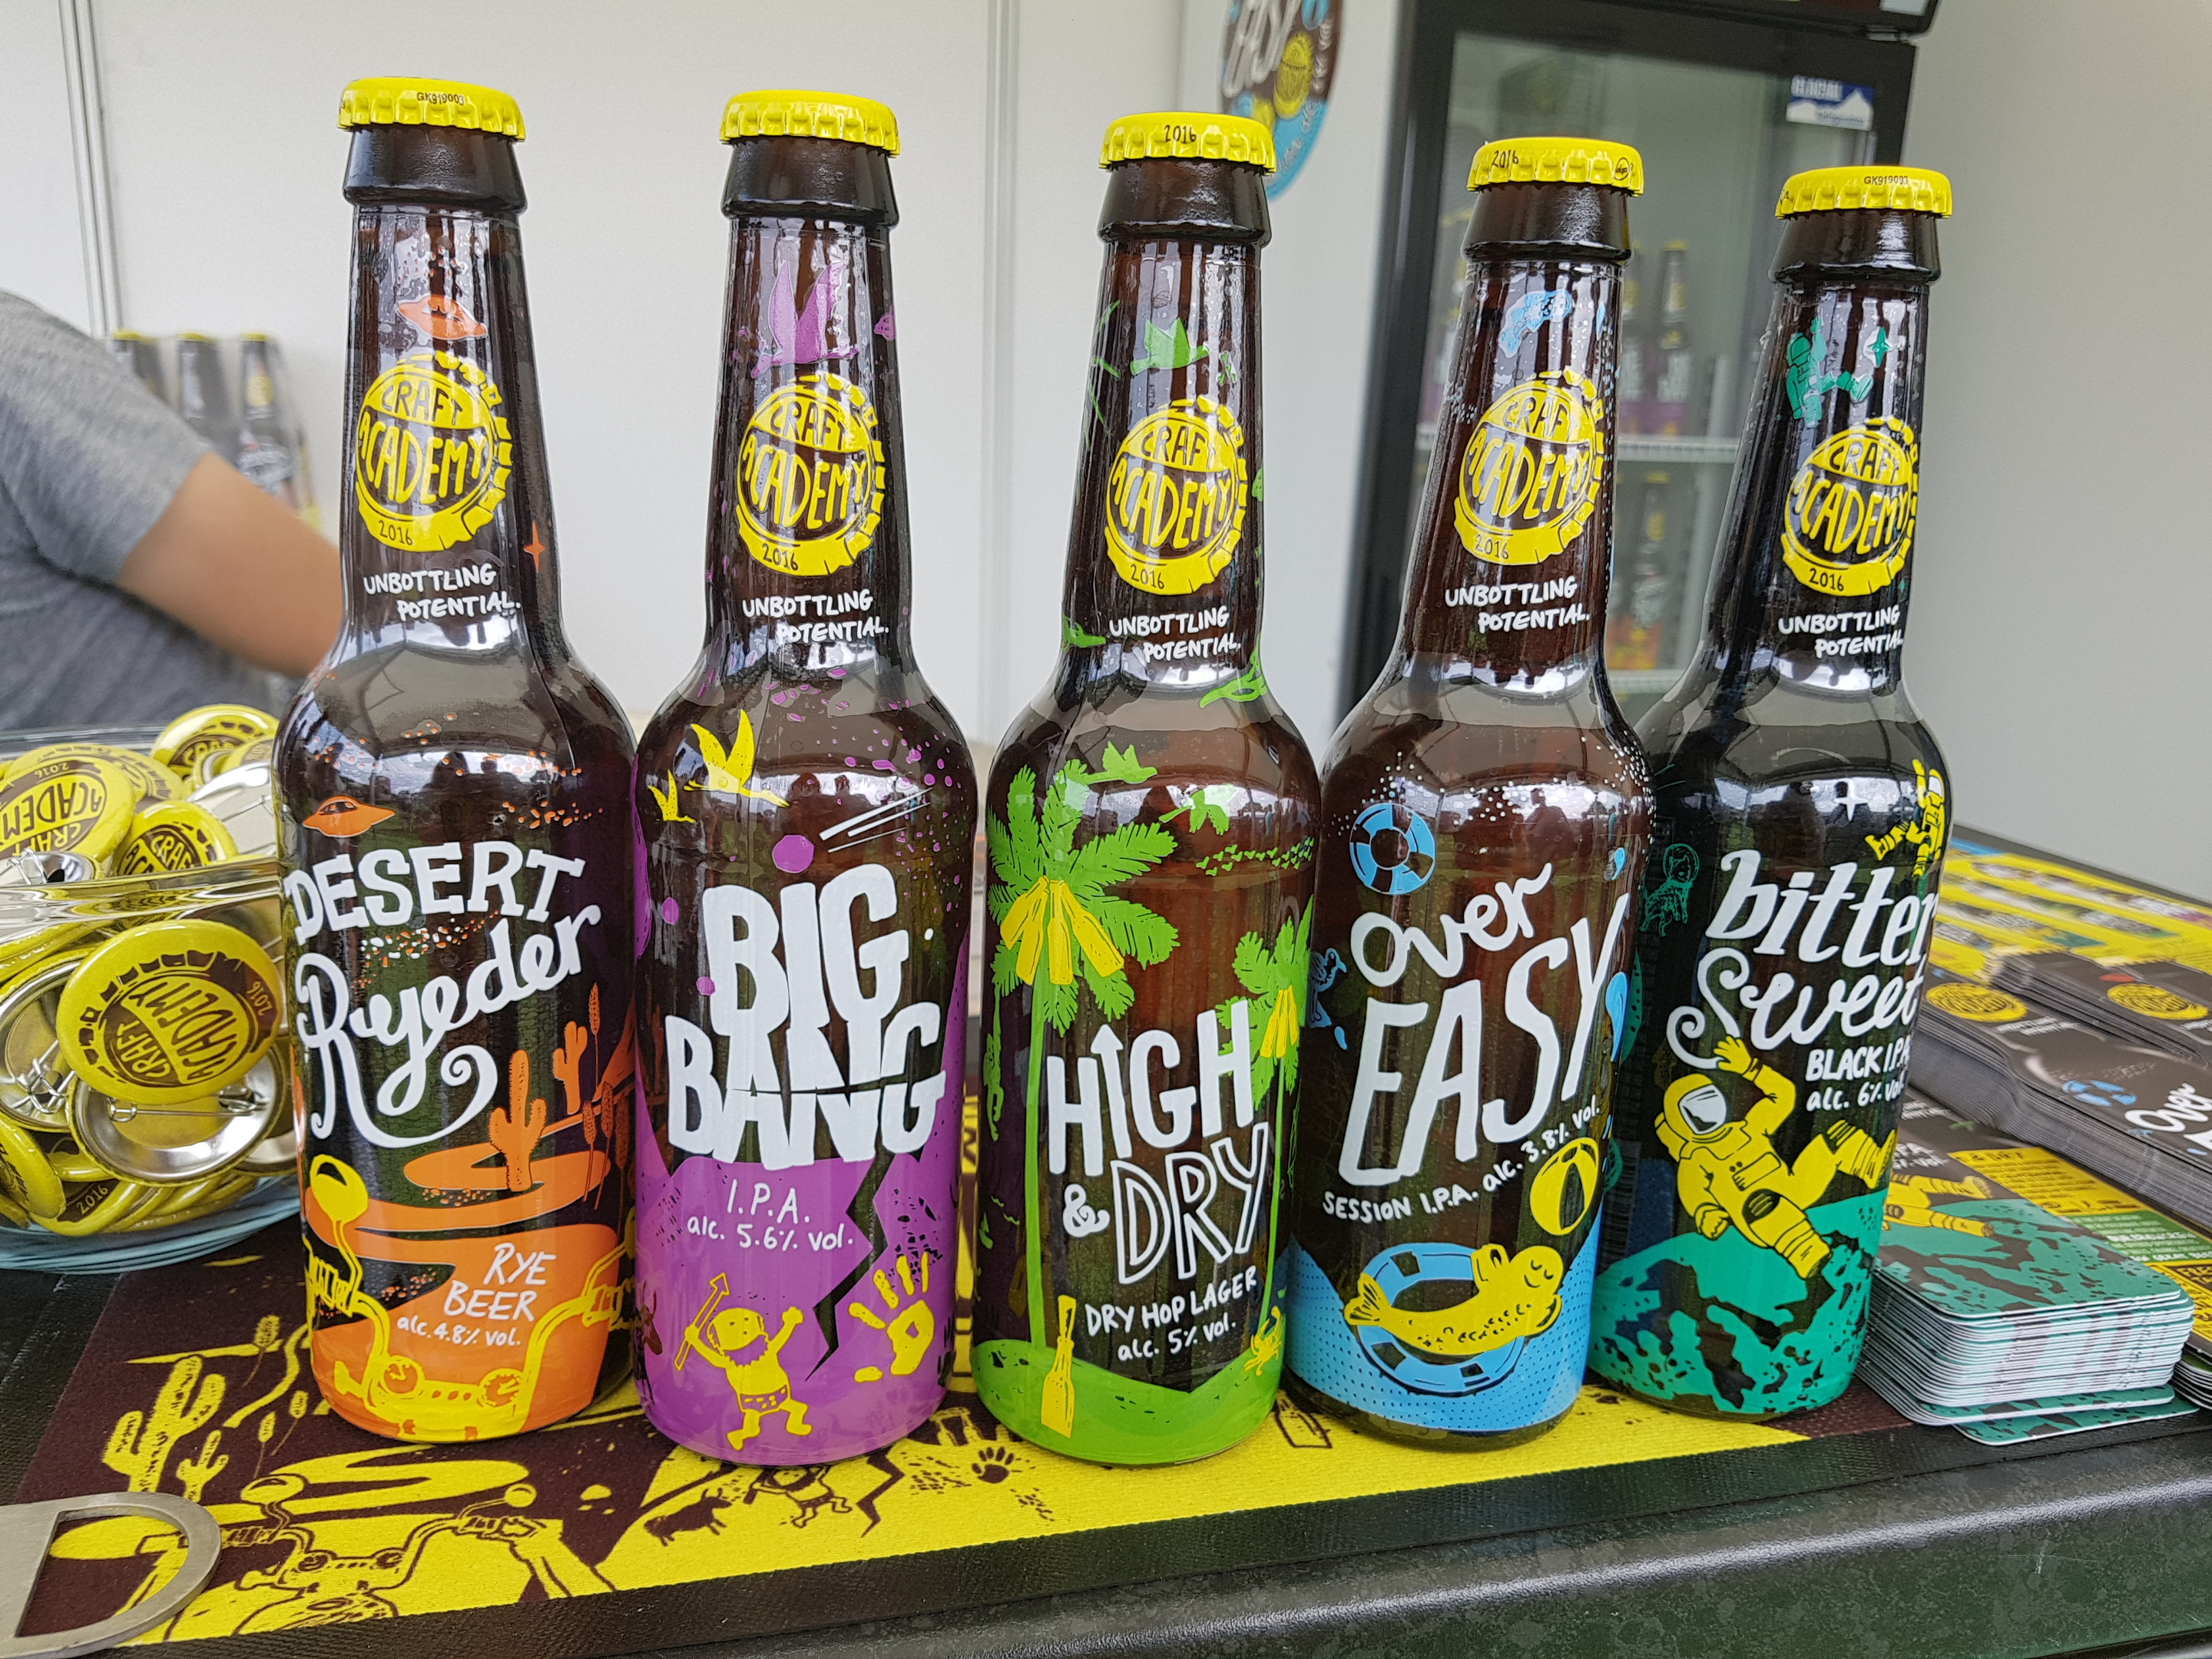 Foodies Festival at Alexandra Palace Academy beer